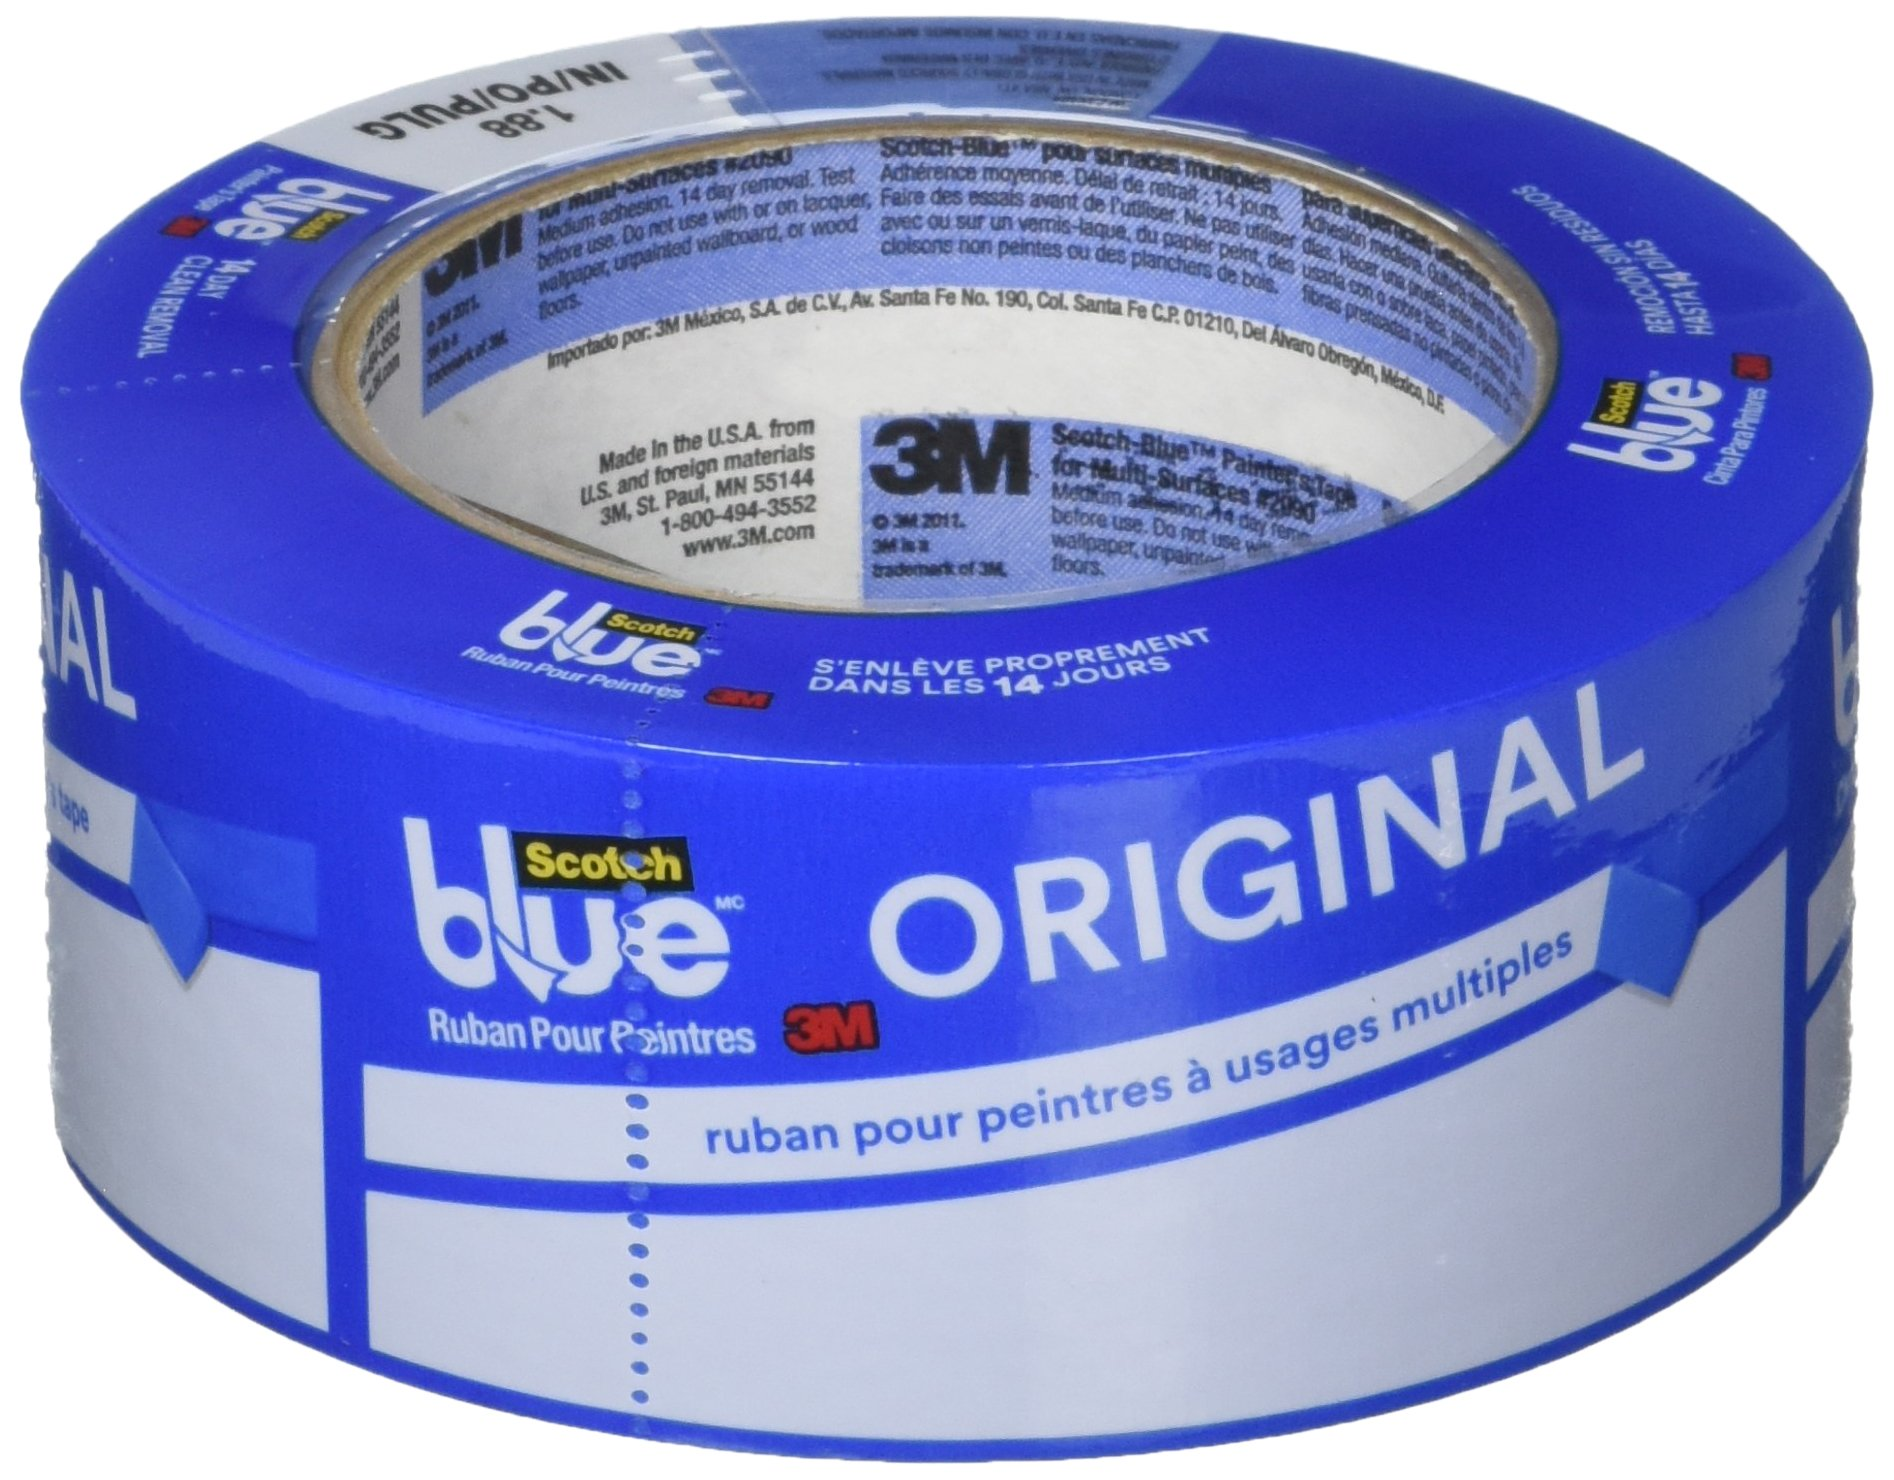 ScotchBlue 2090-48E-G Painter's Tape Original Multi-Surface, 1.88-Inches x 60-Yards, 1 Roll, 12 Packs Per Case